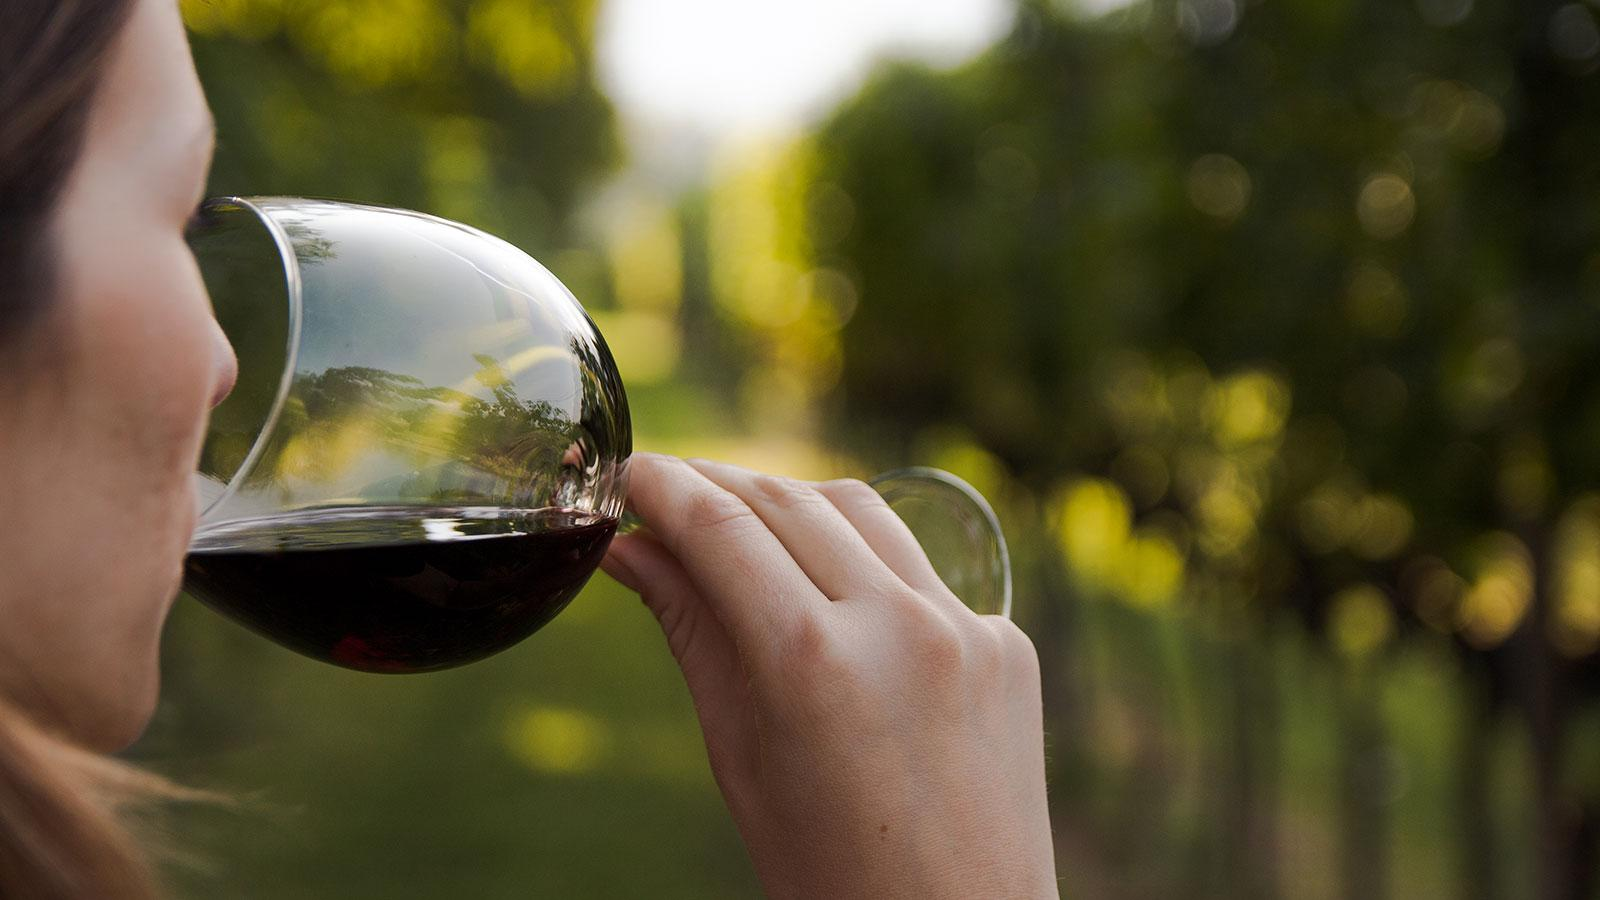 Women and Wine: How Alcohol Affects Female Health